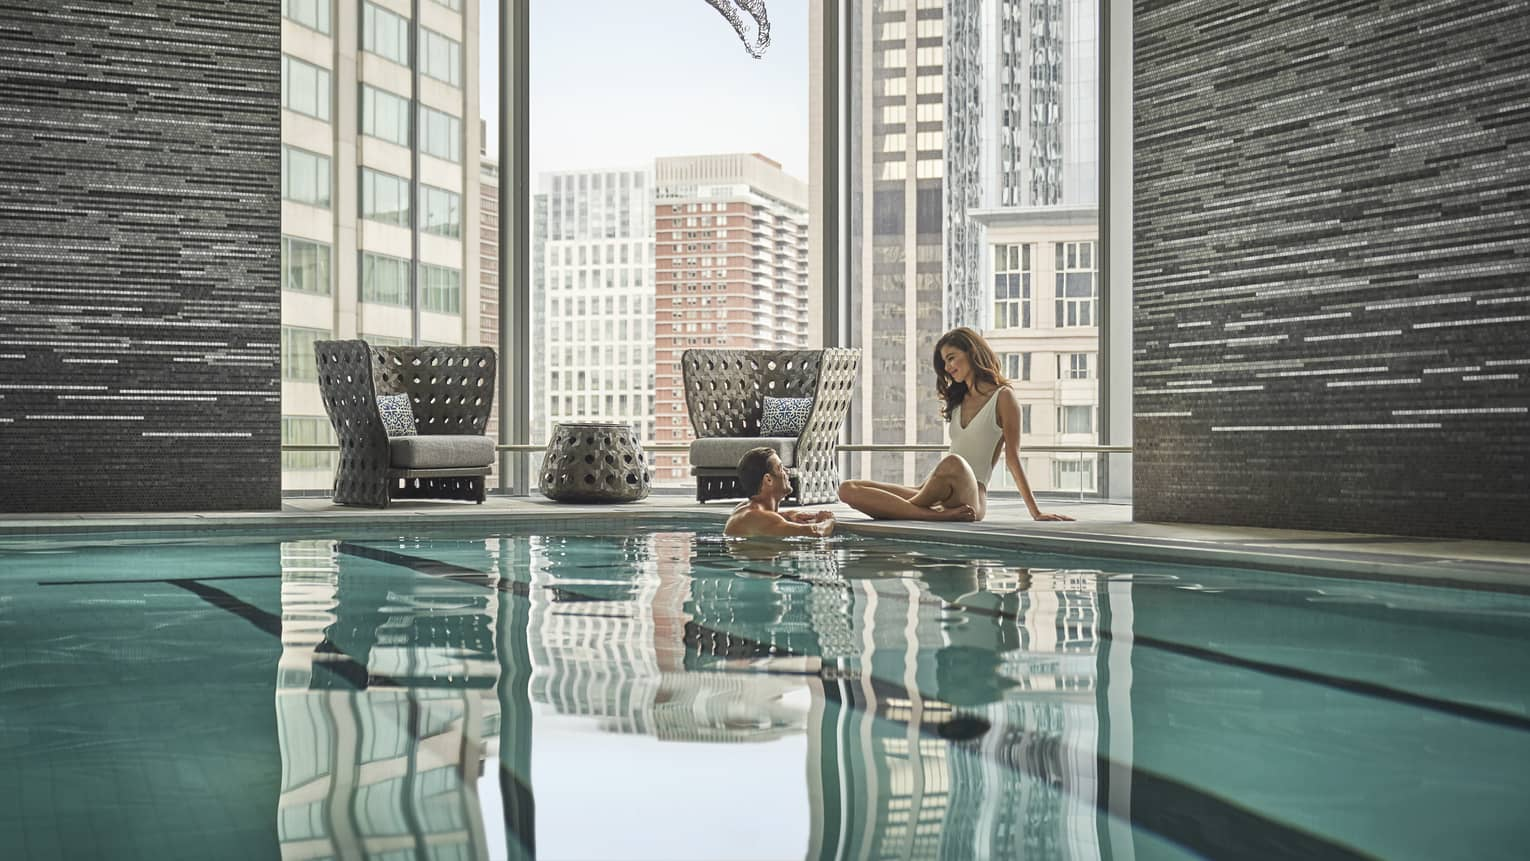 A couple embraces in a lap pool; behind them, floor-to-ceiling windows reveal an urban landscape.